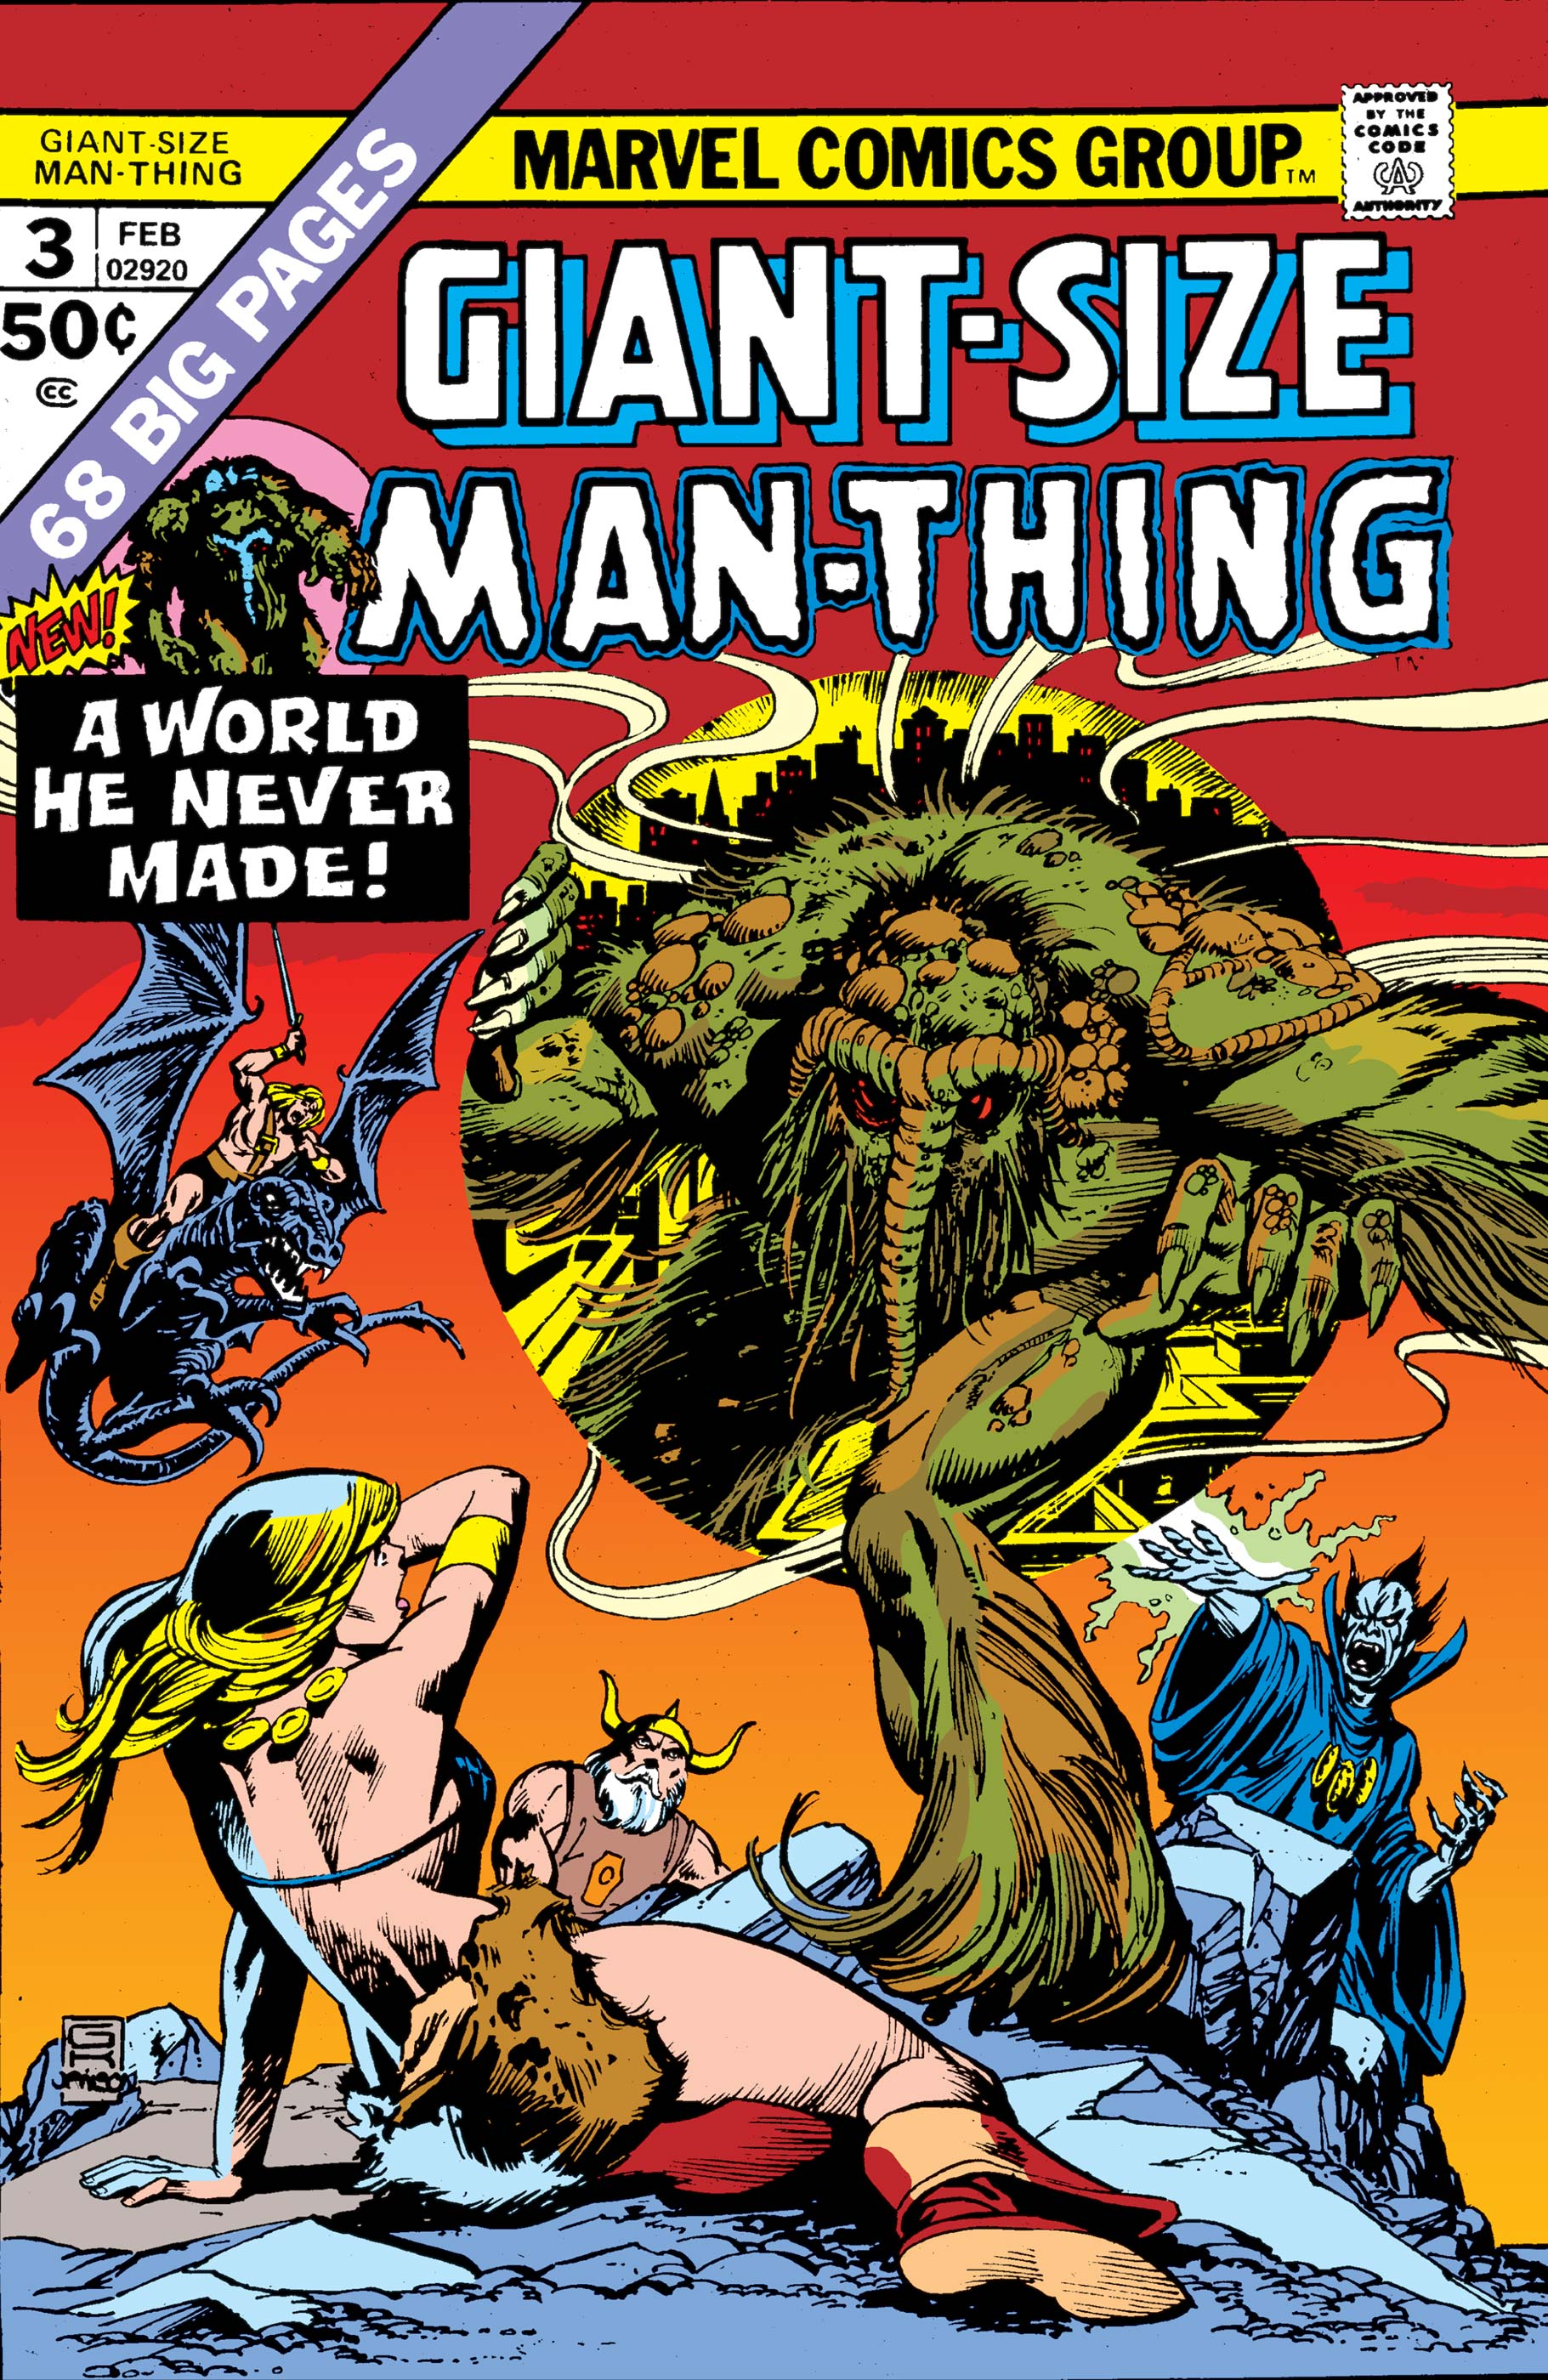 Giant-Size Man-Thing (1974) #3